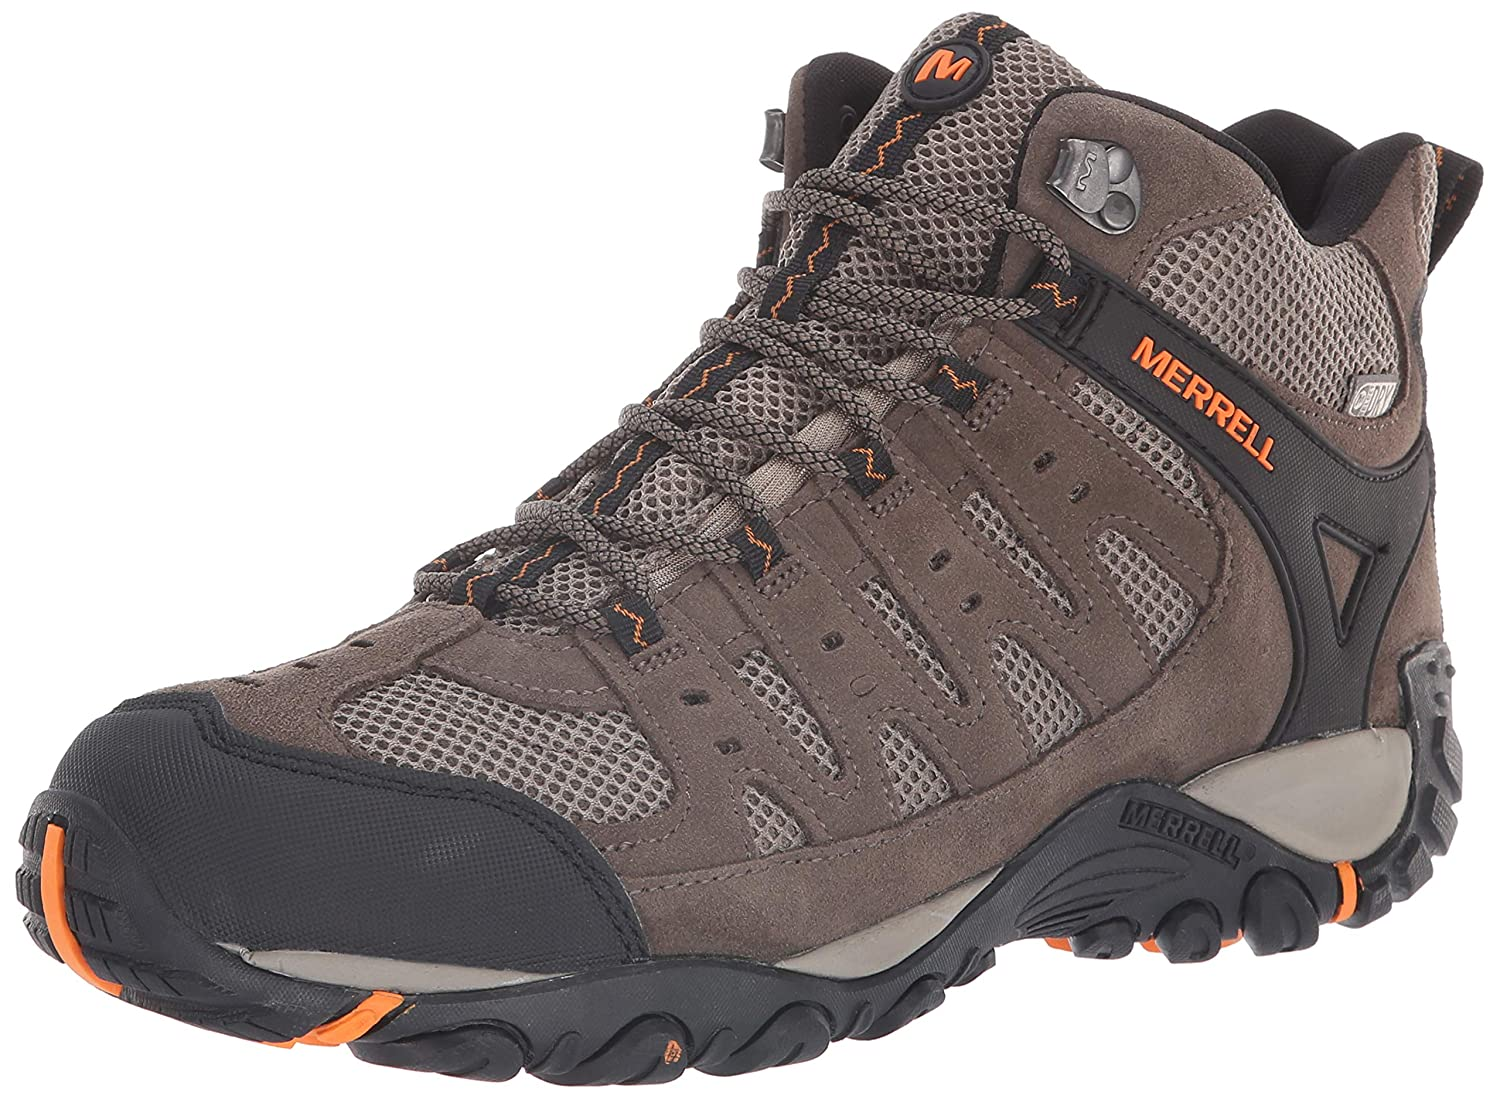 Merrell Men's Accentor Mid Vent Waterproof Hiking Boot